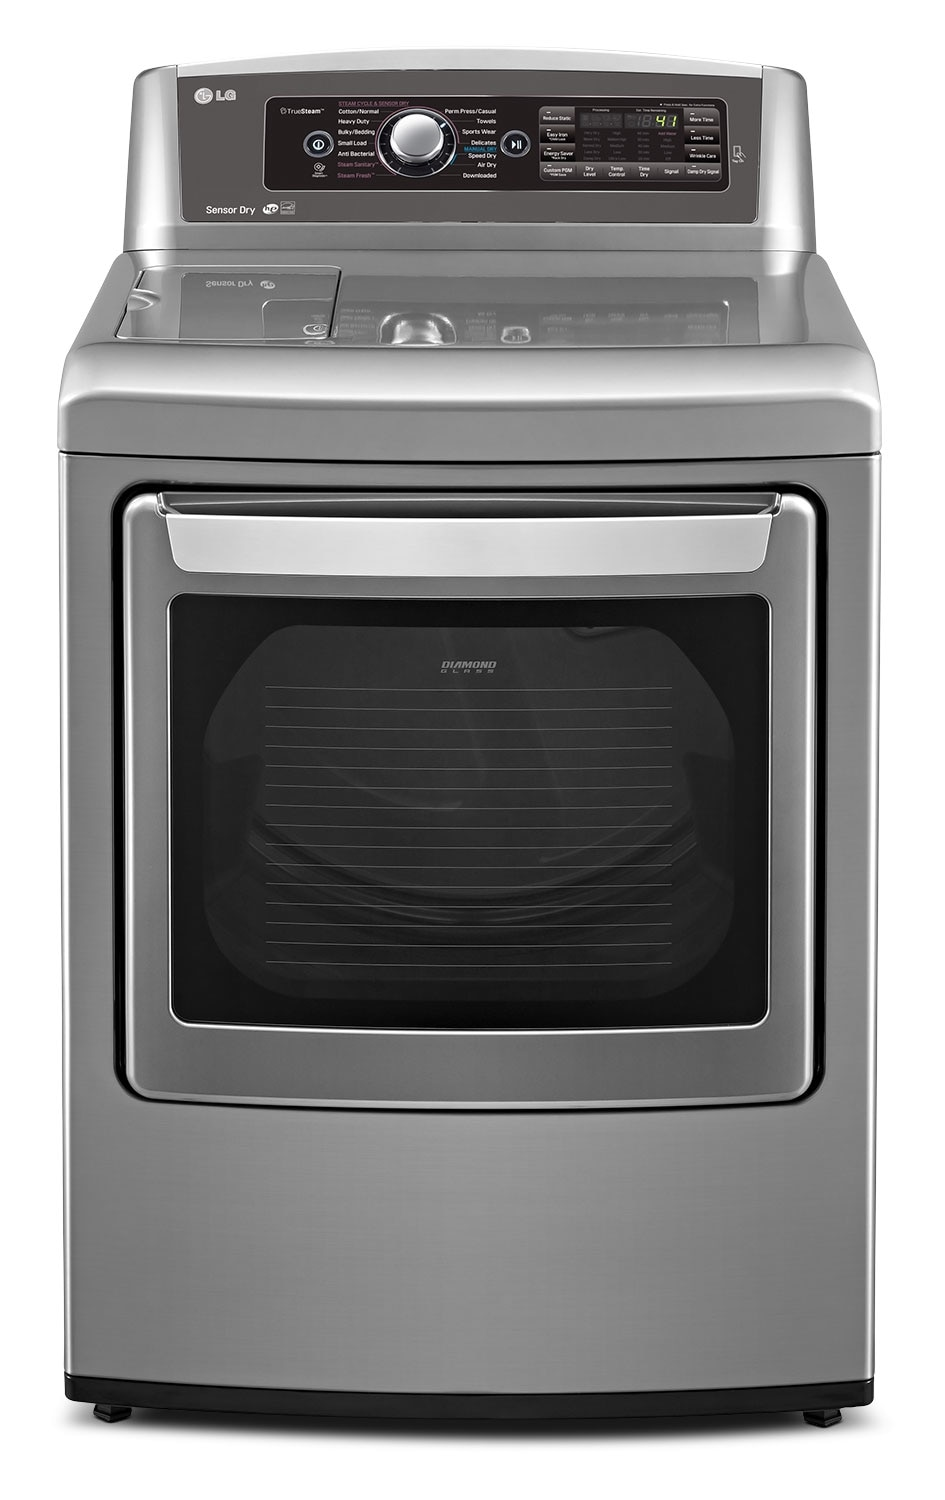 LG Graphite Steel Electric Dryer (7.3 Cu. Ft.) - DLEX5780VE